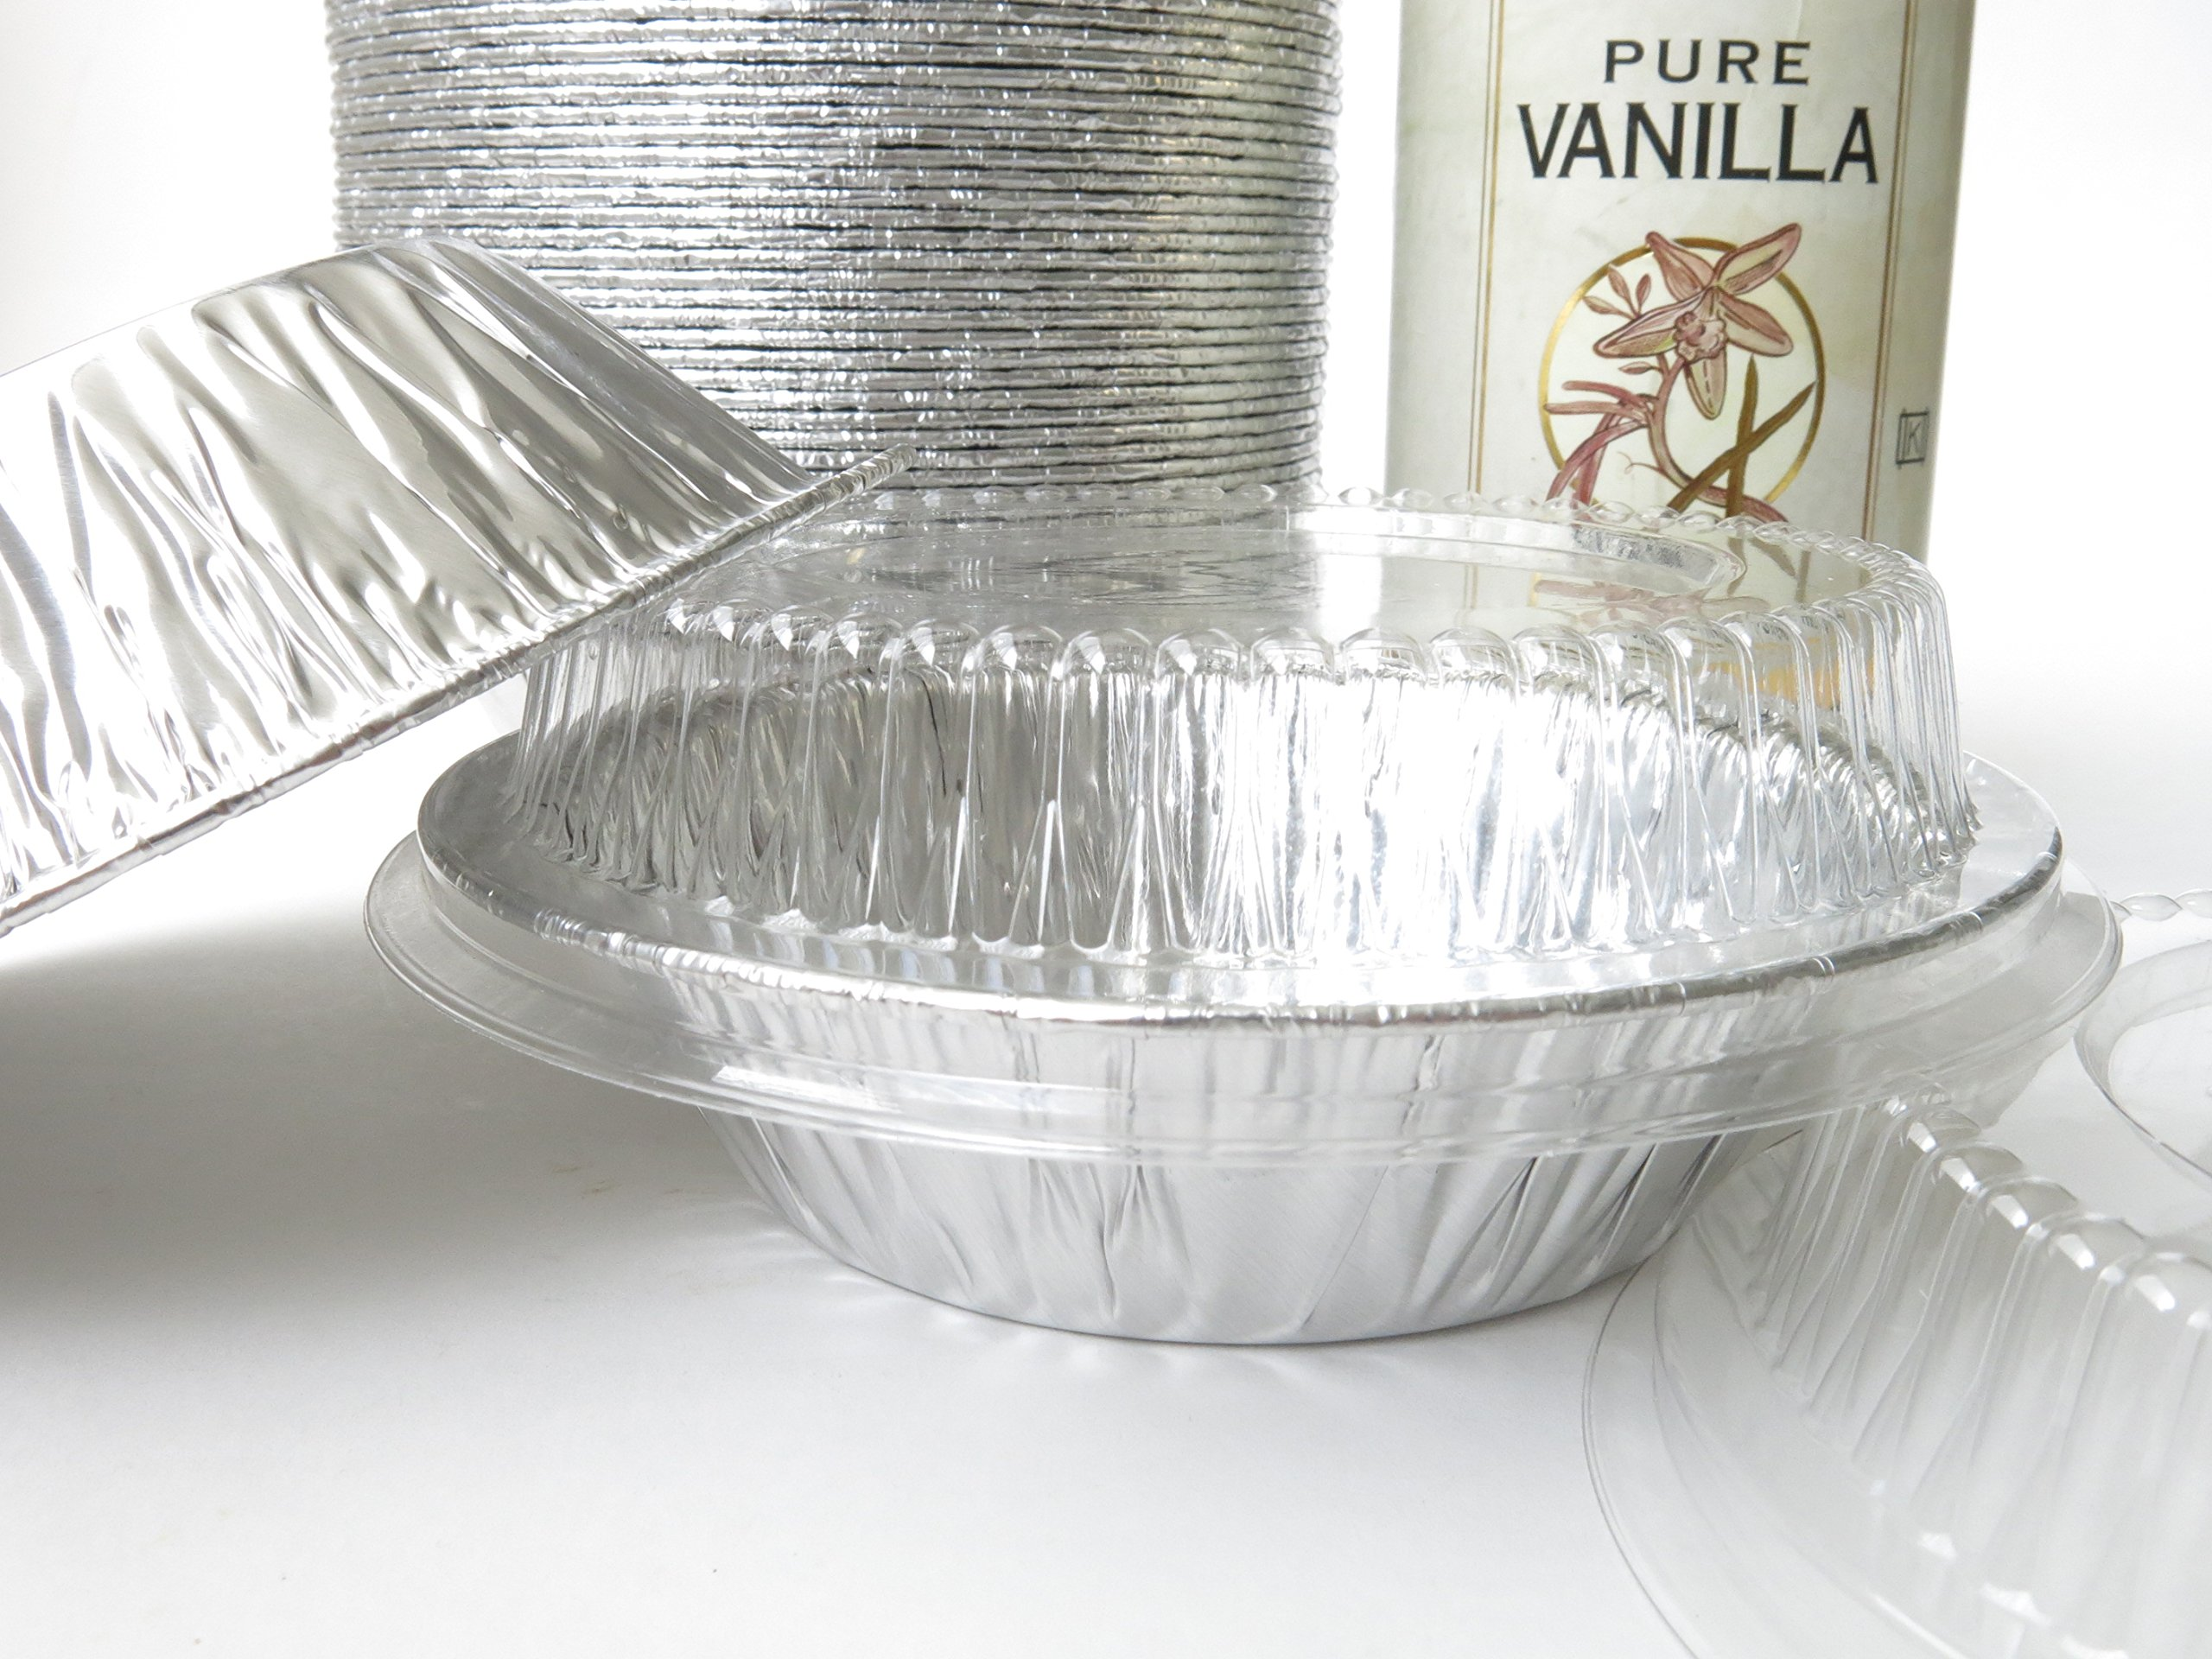 Disposable Aluminum 5'' Tart Pan/individual Pie Pan w/ Clear Dome Lid #501P (500)